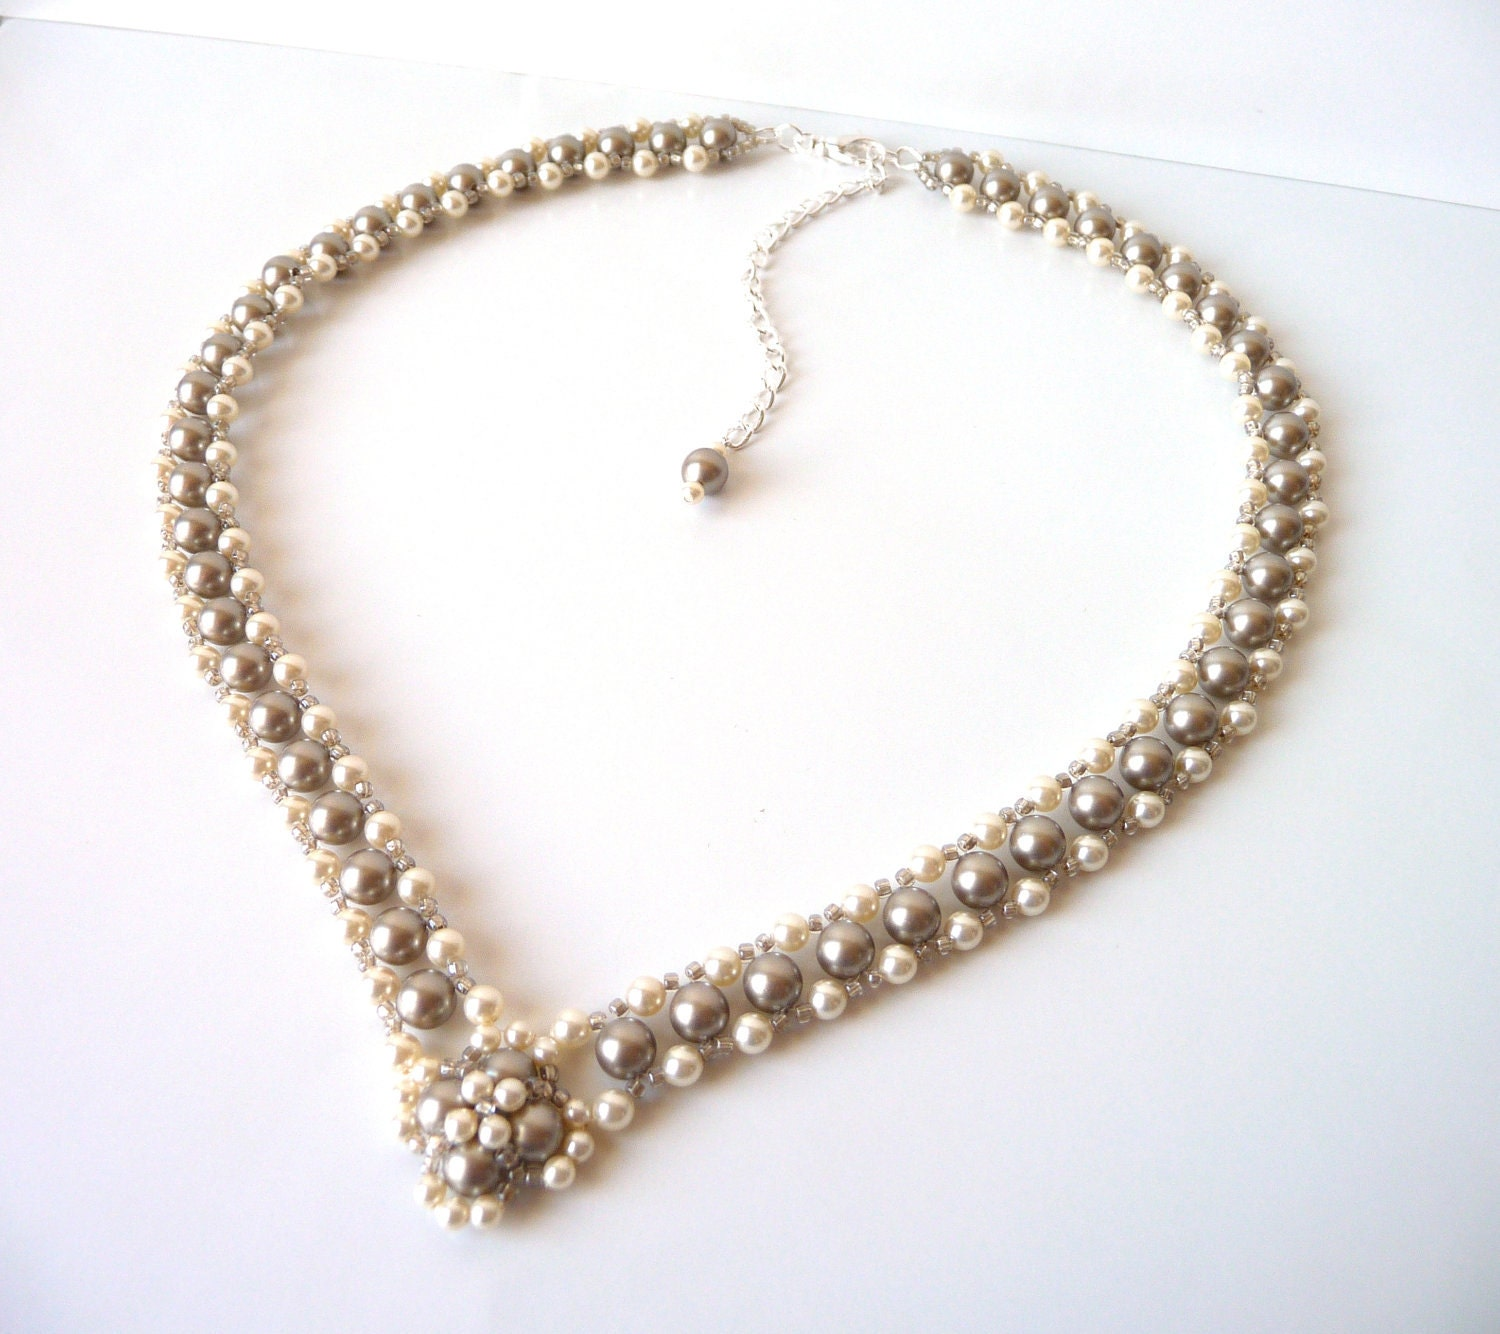 champagne pearl bridal necklace wedding jewelry bridesmaid